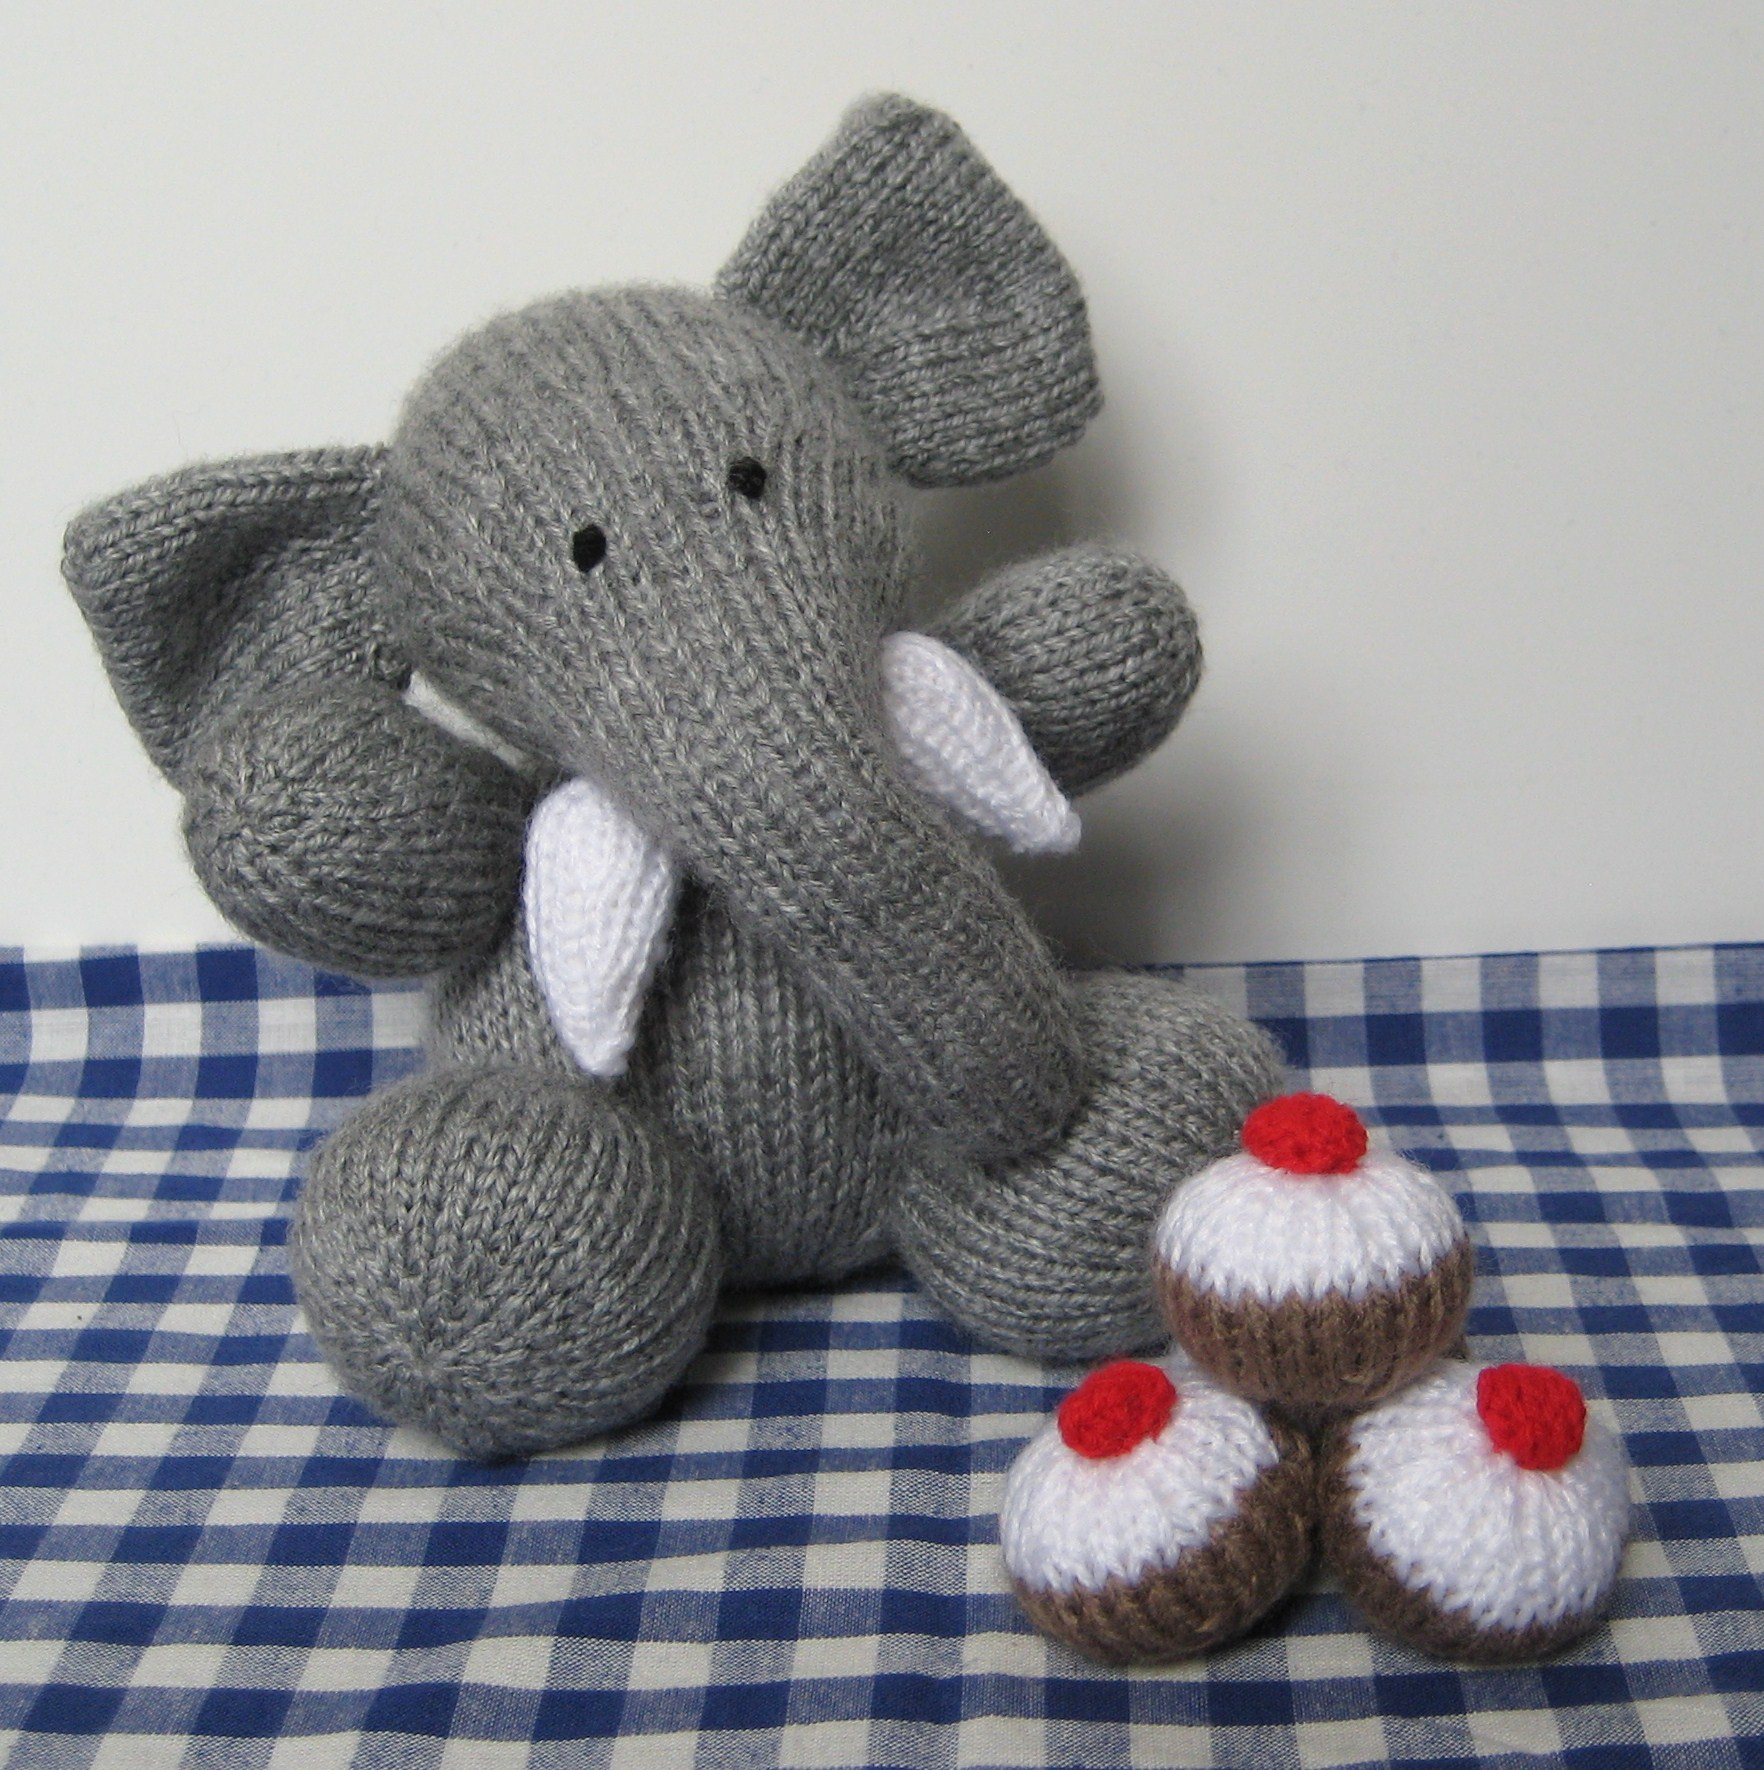 Knitting Pattern For Baby Elephant : Bloomsbury elephant knitting pattern